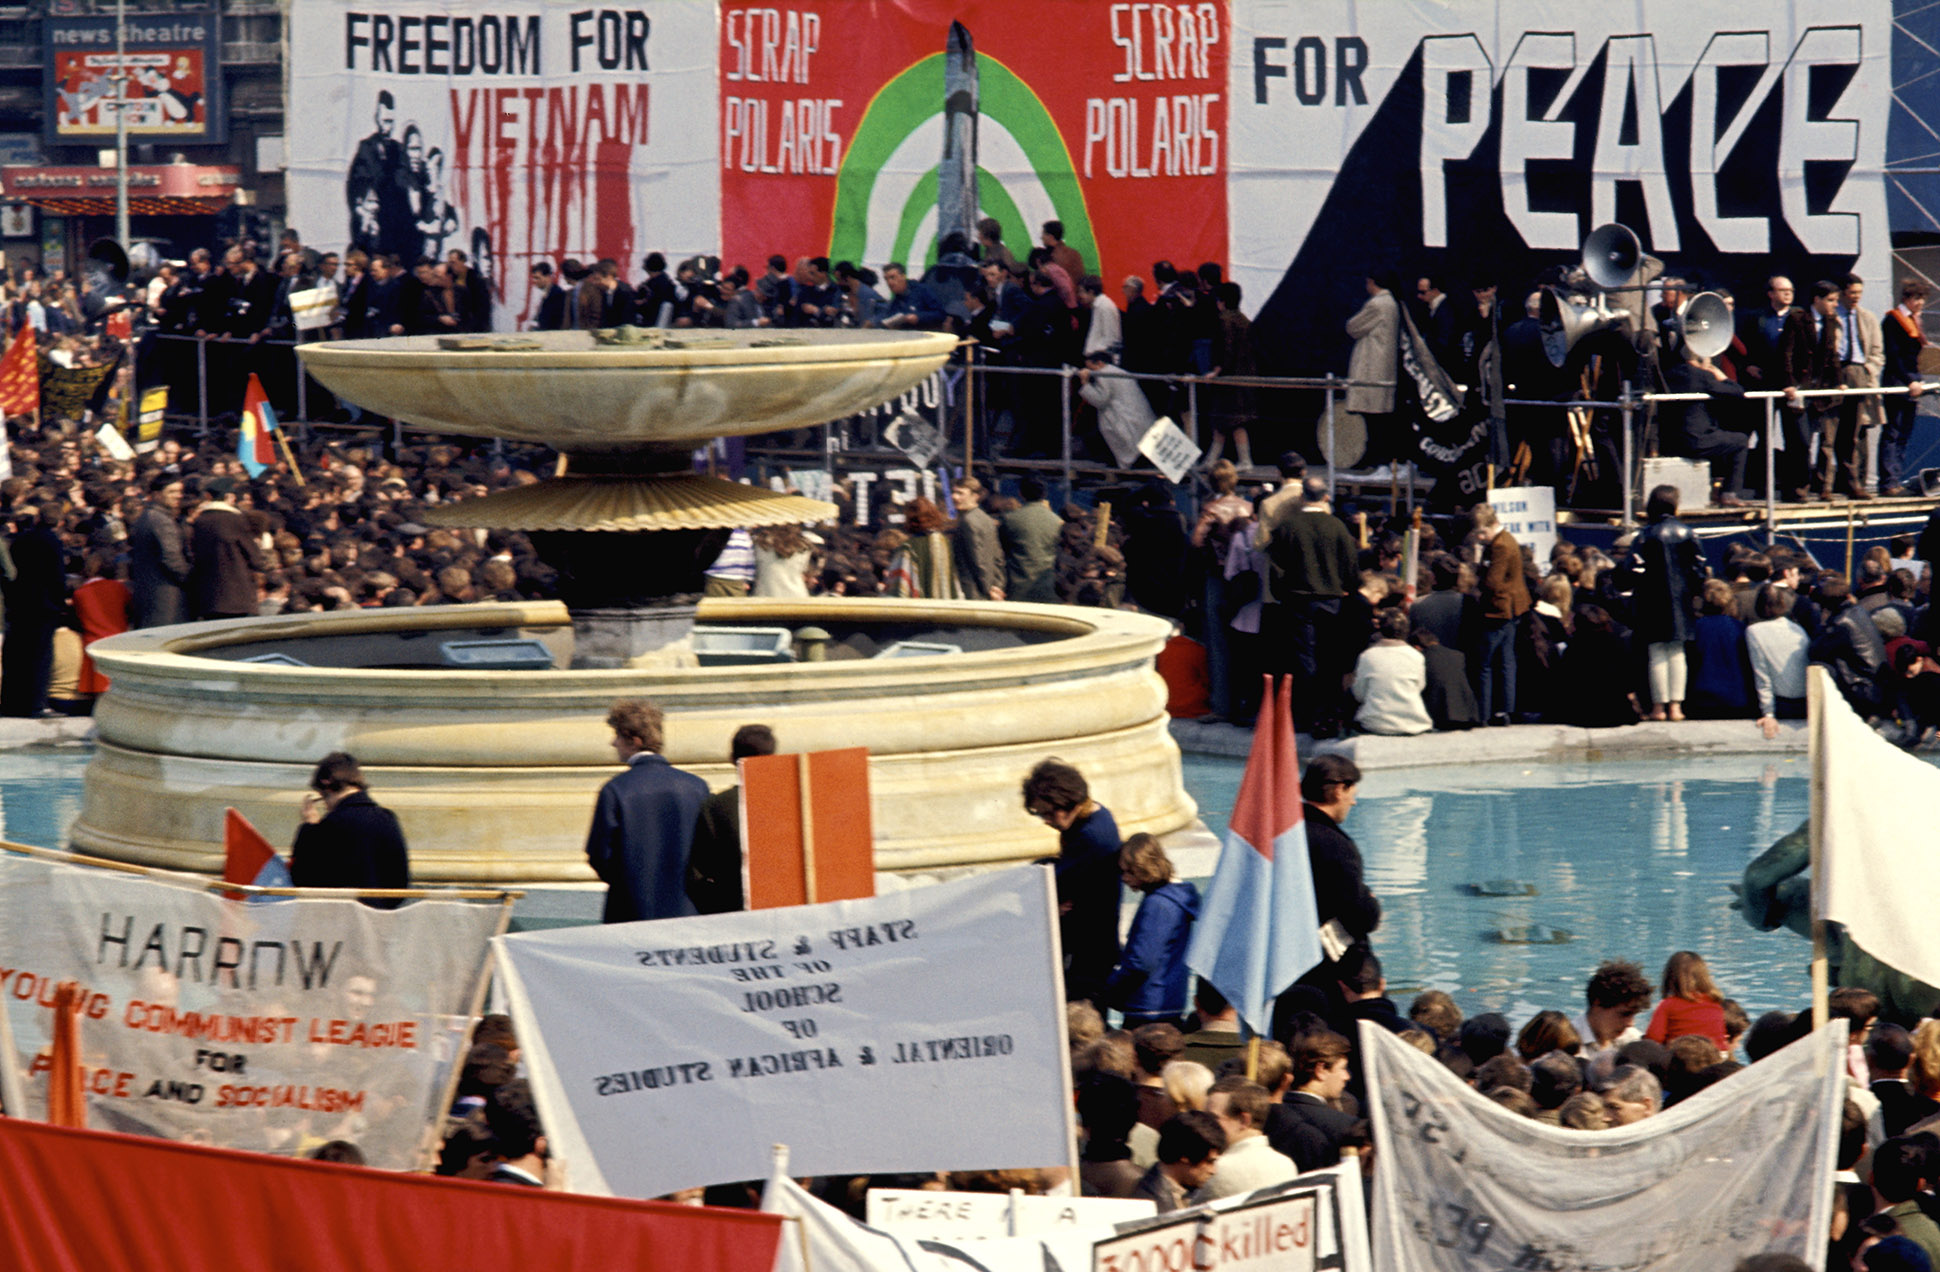 A crowd Campaign for Nuclear Disarmament (CND) anti war, peace demonstration, Trafalgar Square, 1960s by Chris Morris